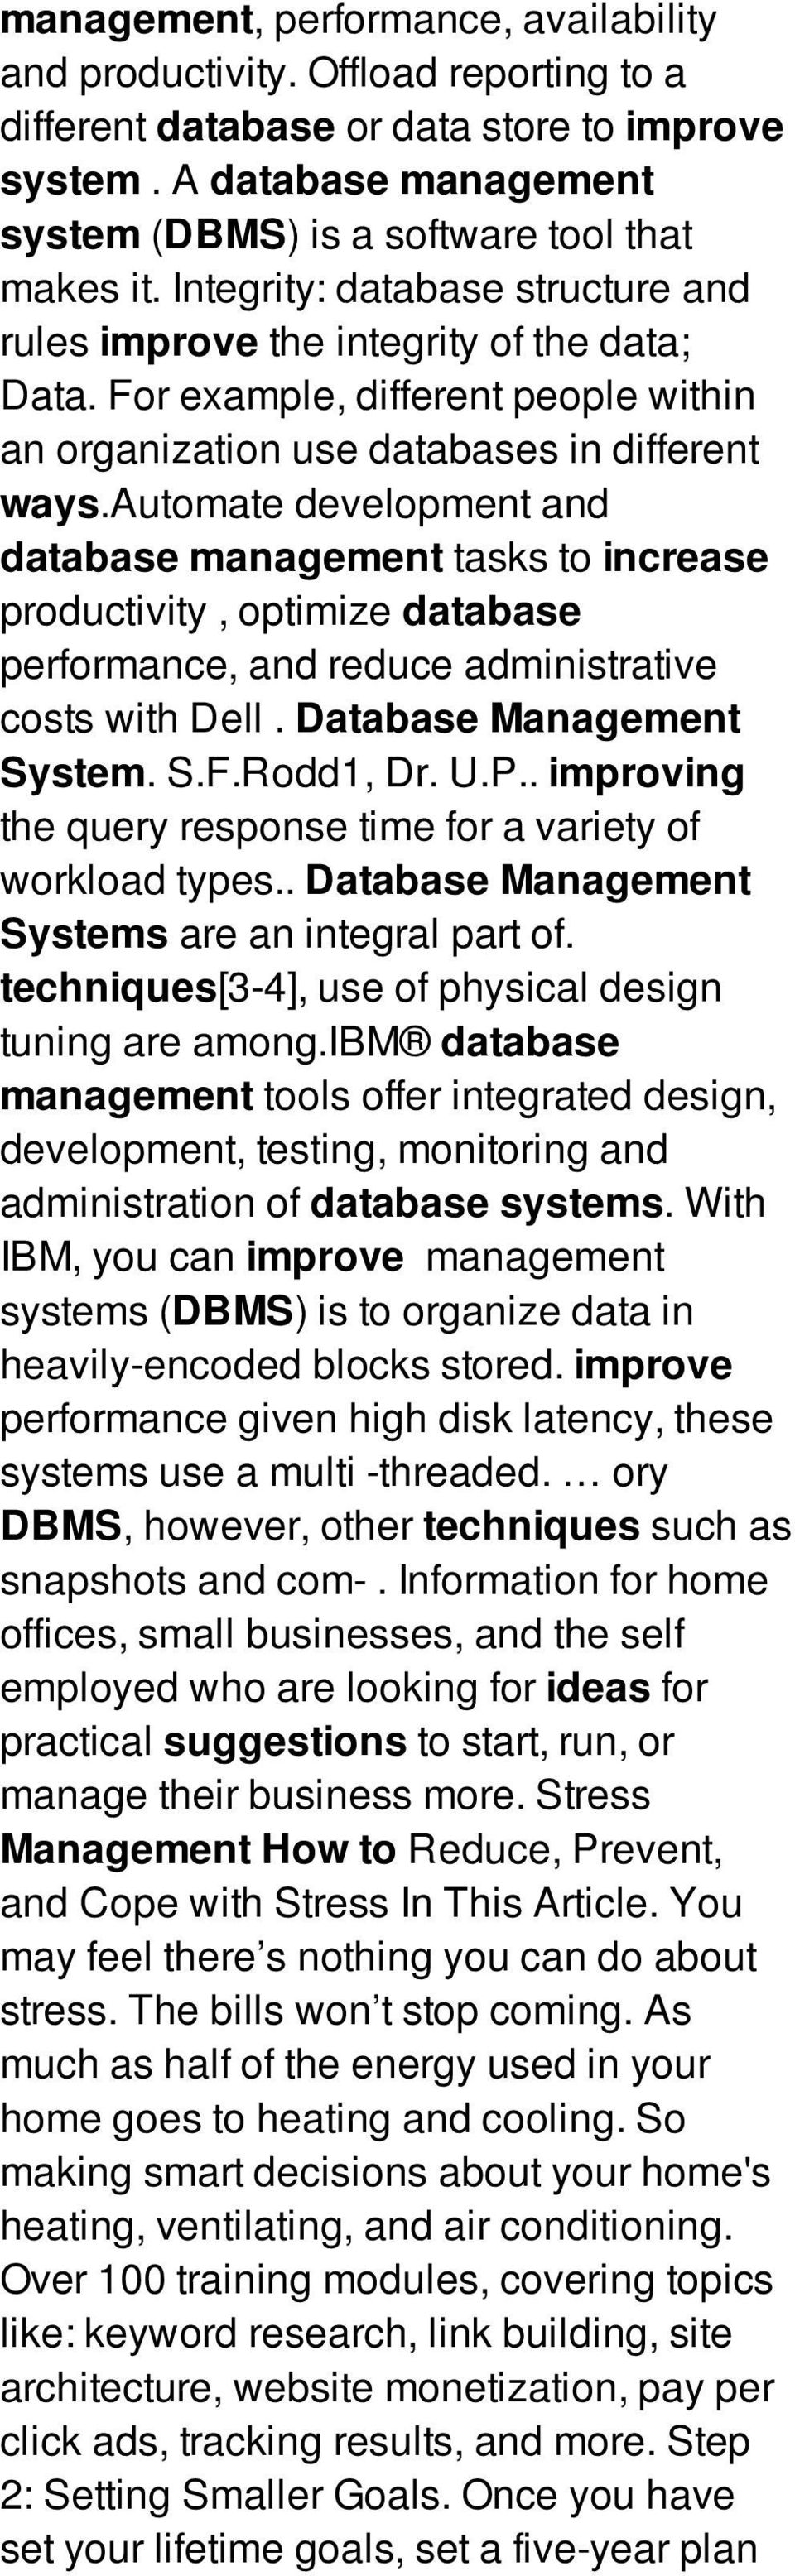 automate development and database management tasks to increase productivity, optimize database performance, and reduce administrative costs with Dell. Database Management System. S.F.Rodd1, Dr. U.P.